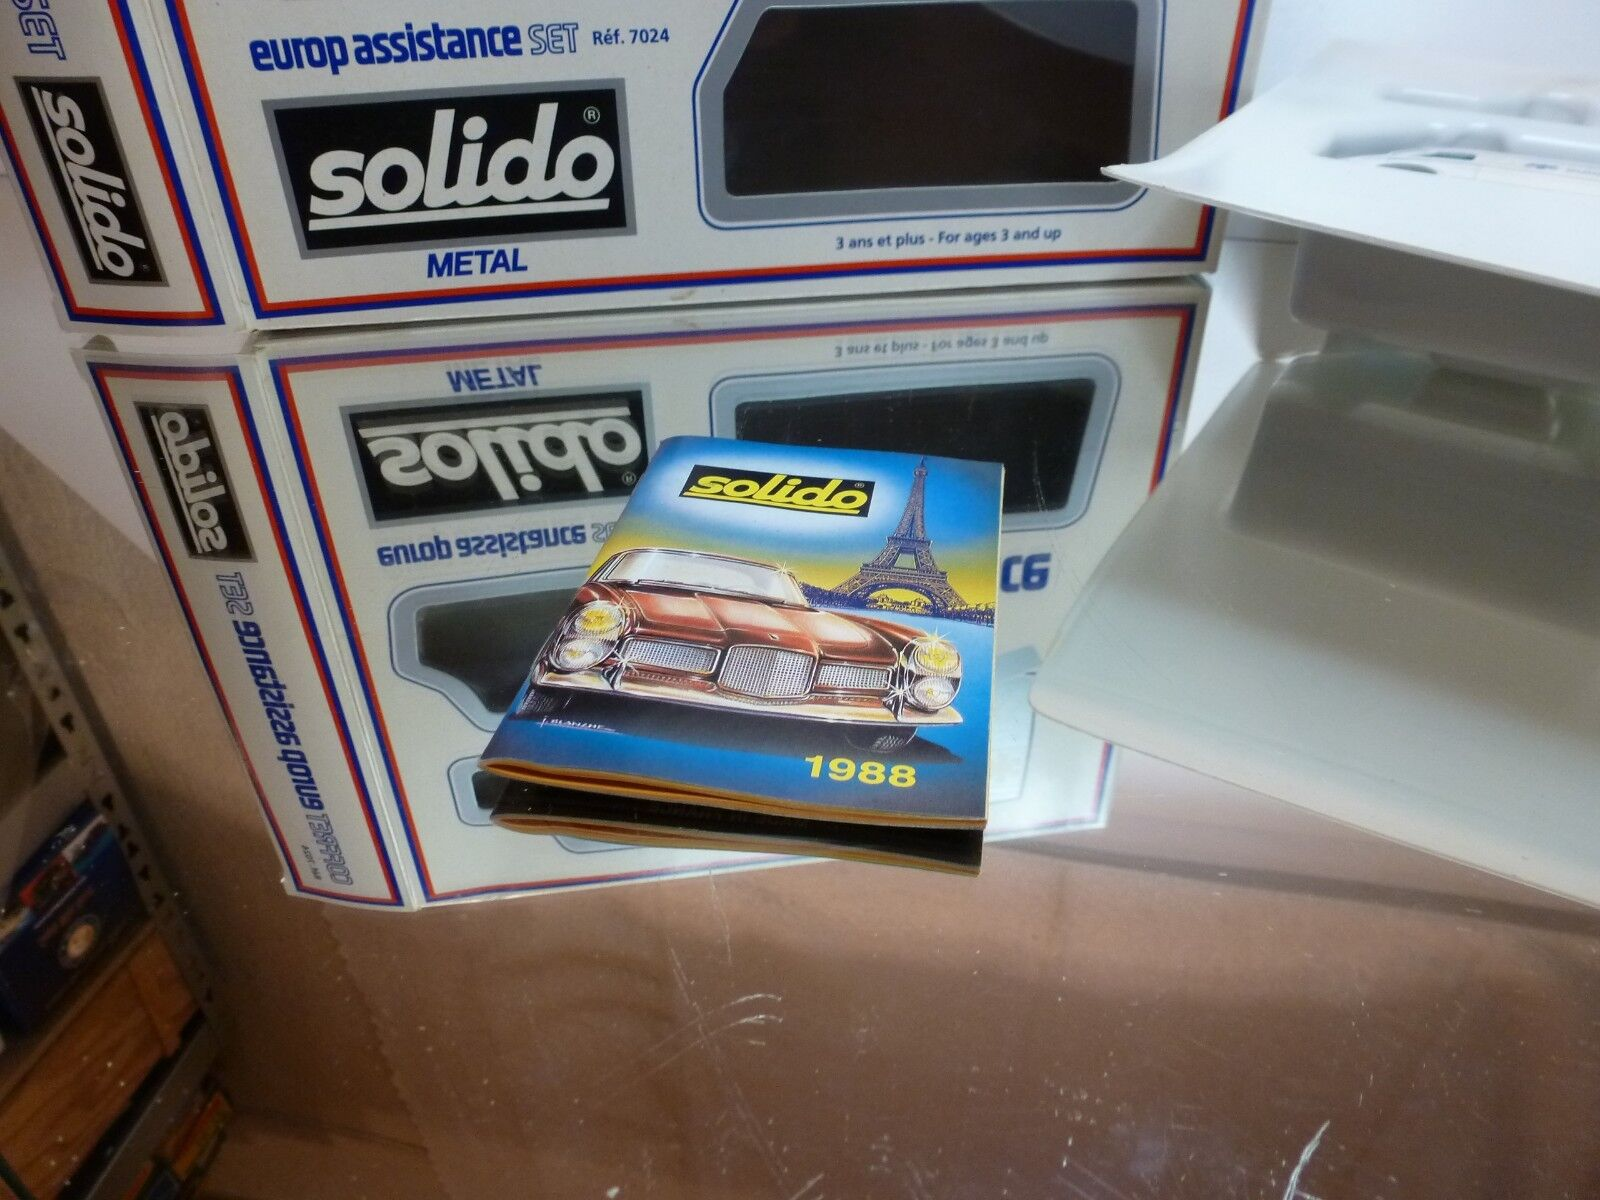 SOLIDO 7024 EUROP ASSISTANCE SET - GOOD GOOD GOOD CONDITION IN BOX 5a020f